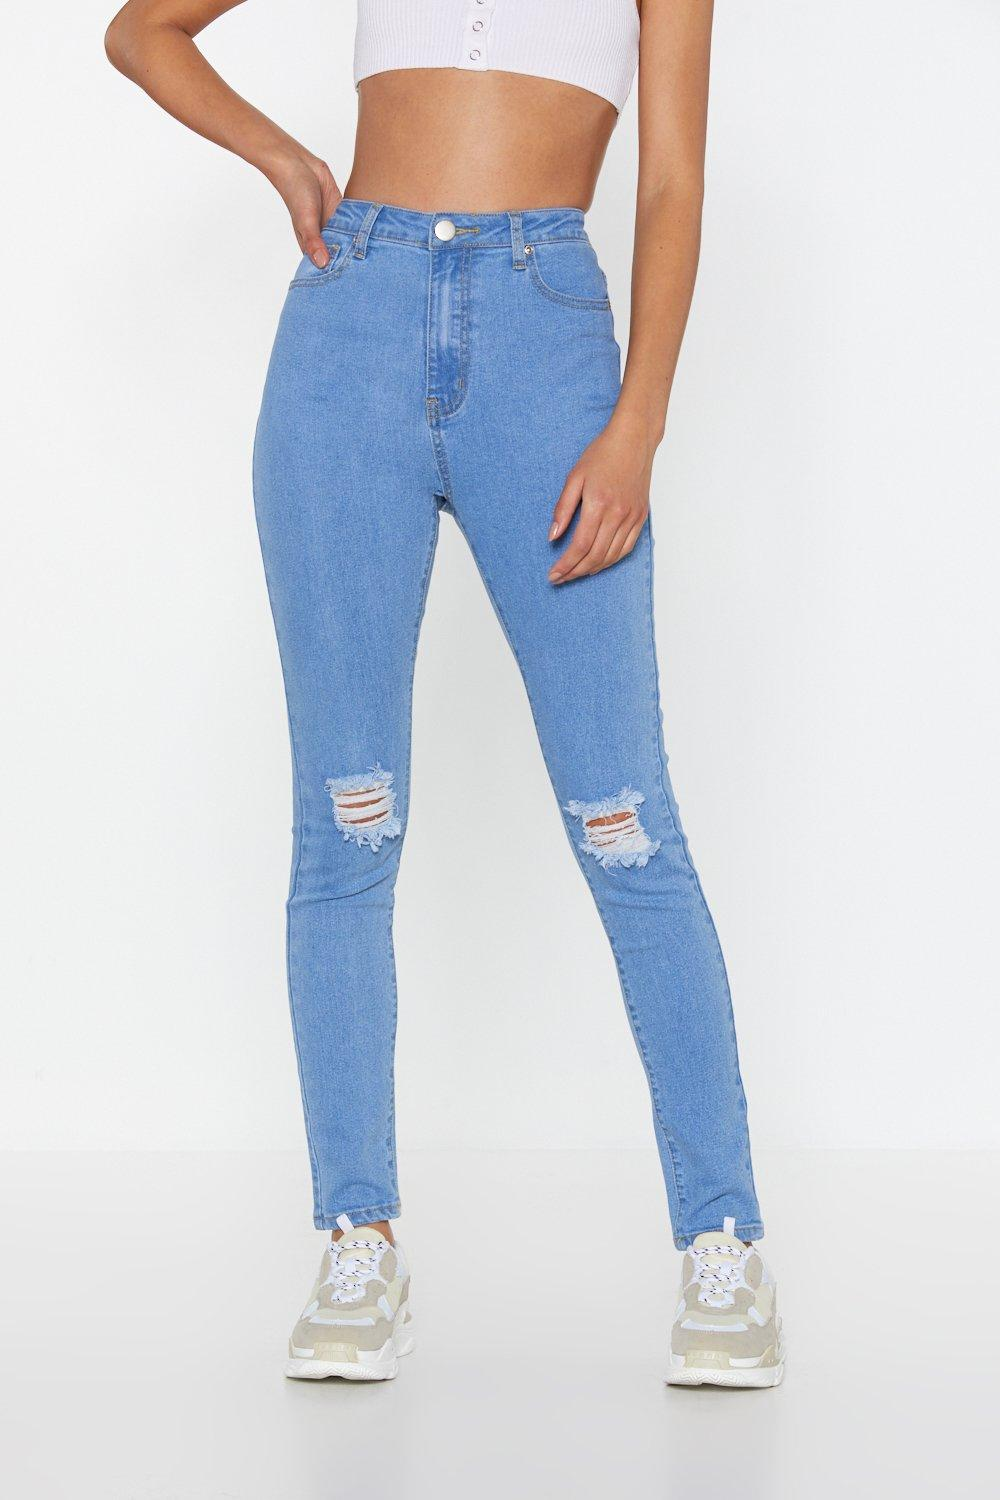 5f8a9f3703e Let Her Rip Distressed Skinny Jeans | Shop Clothes at Nasty Gal!